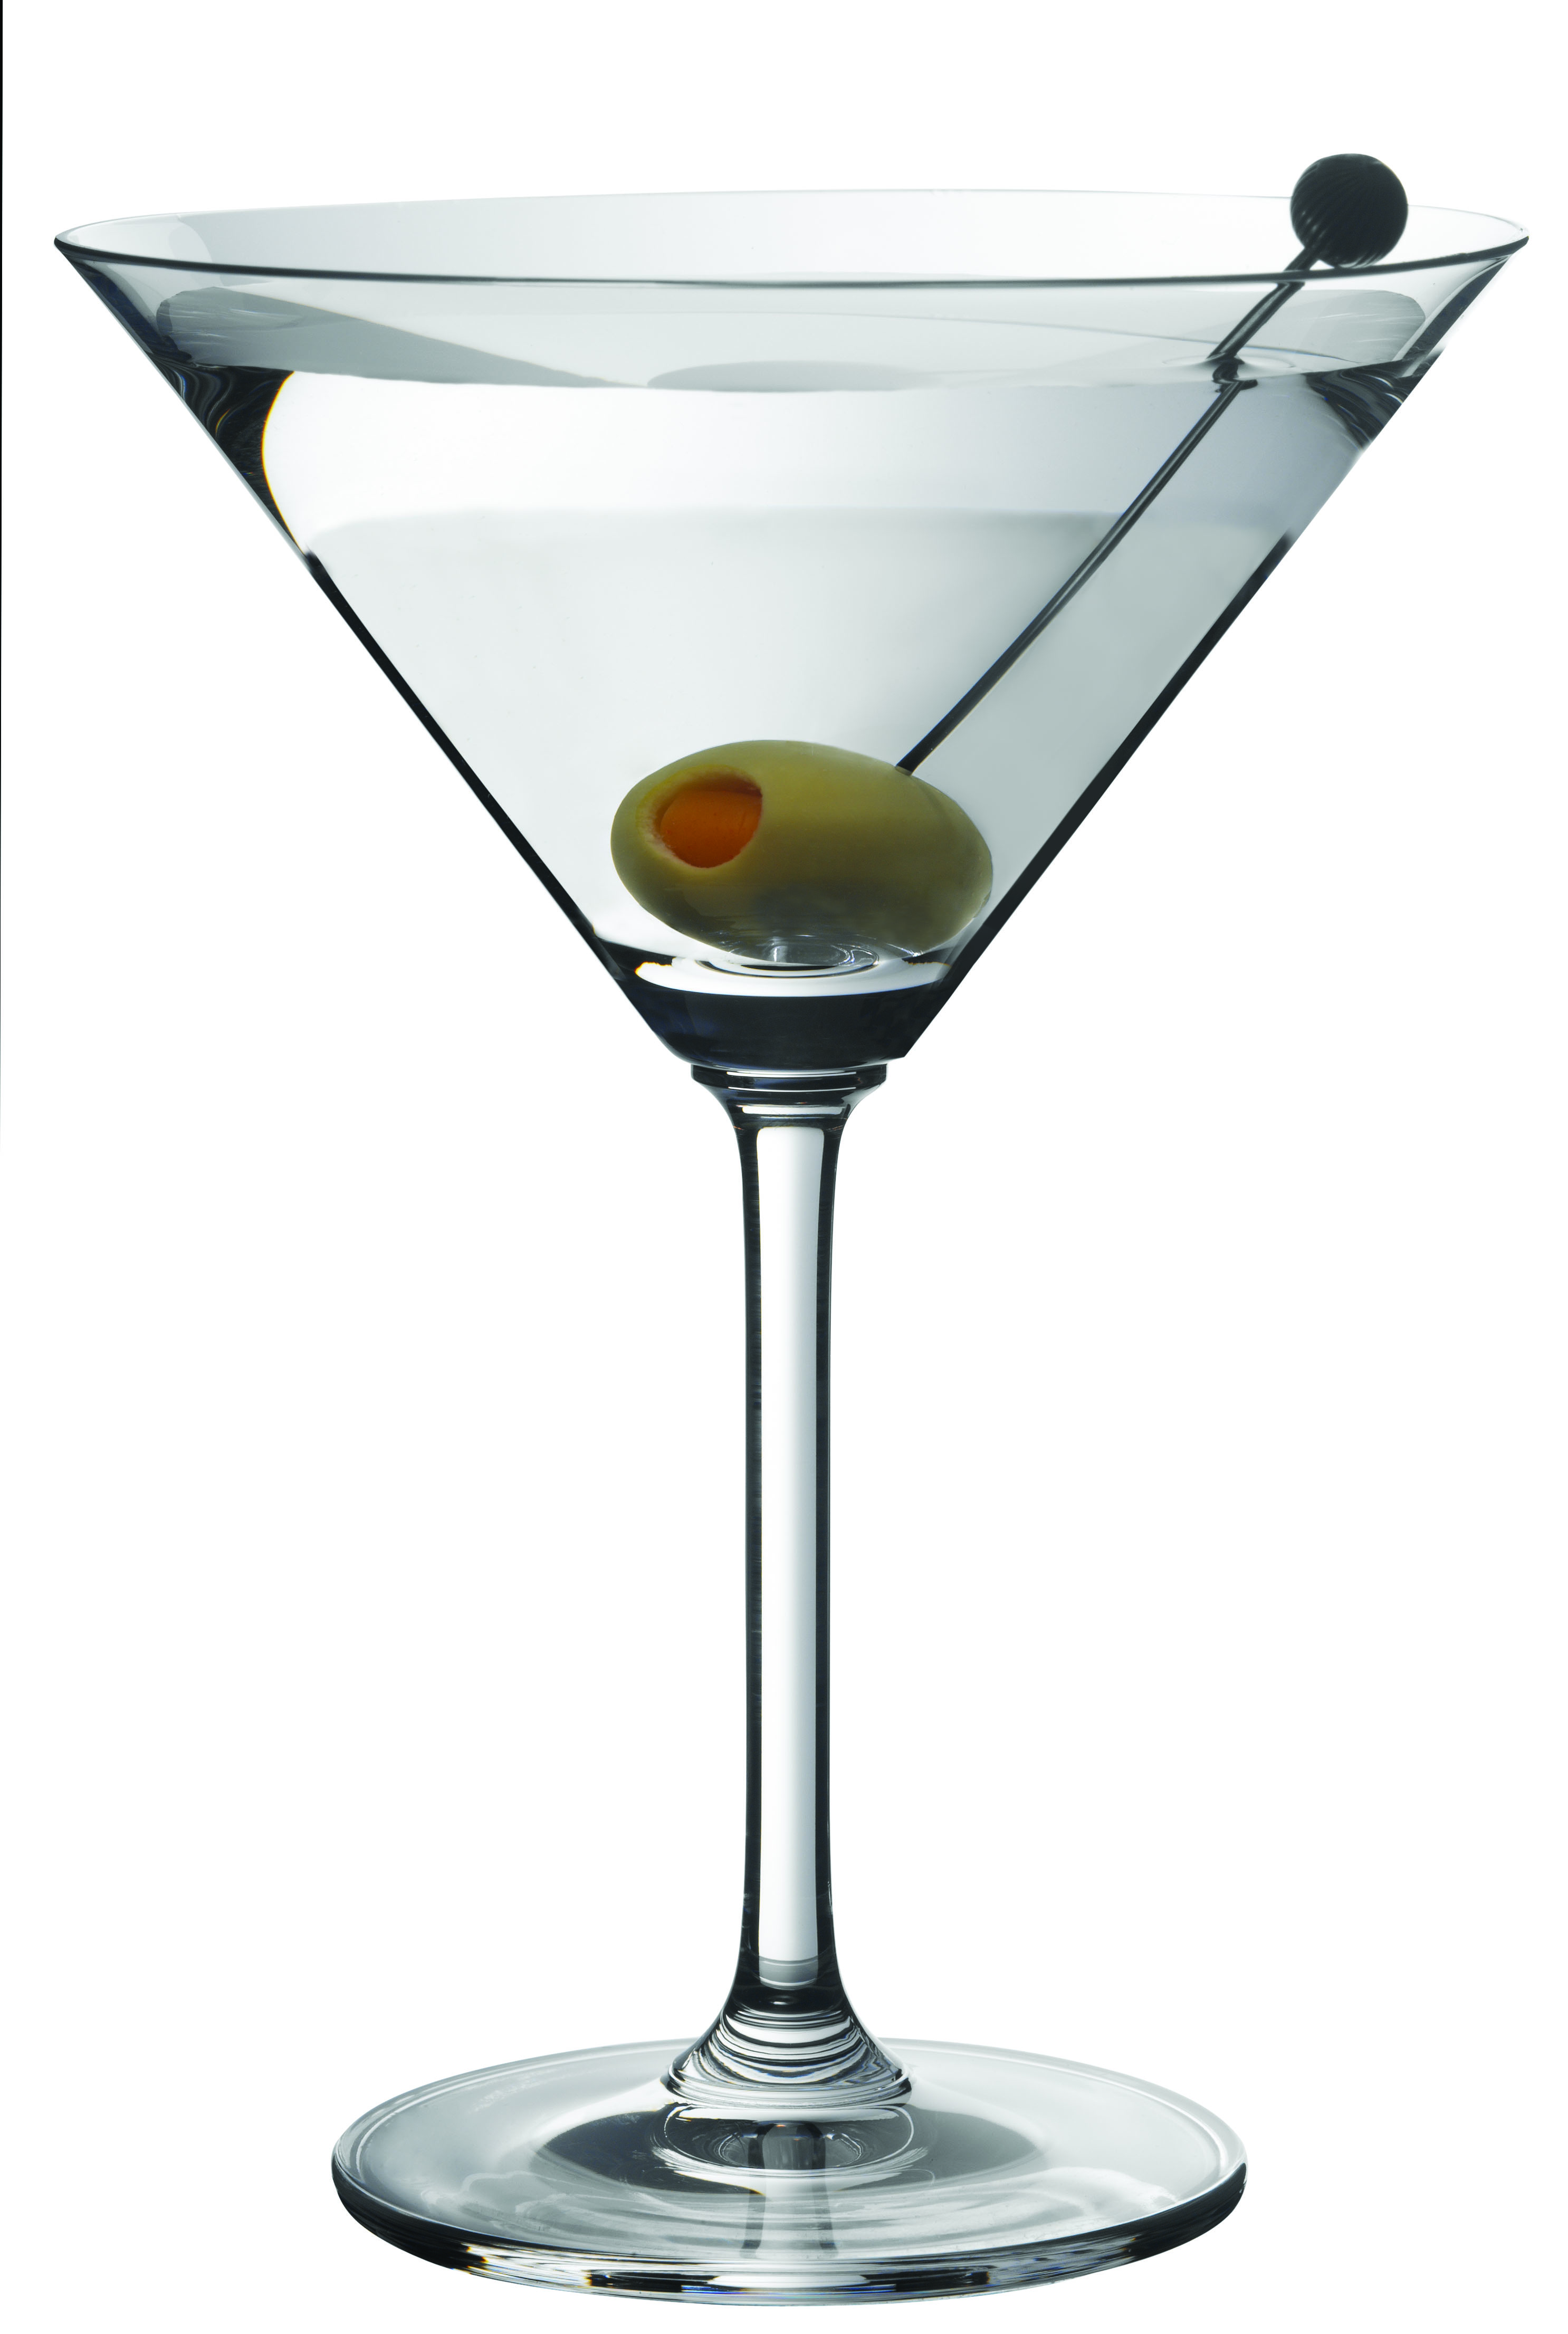 Top 10 Most Popular Cocktails In The World - Martini